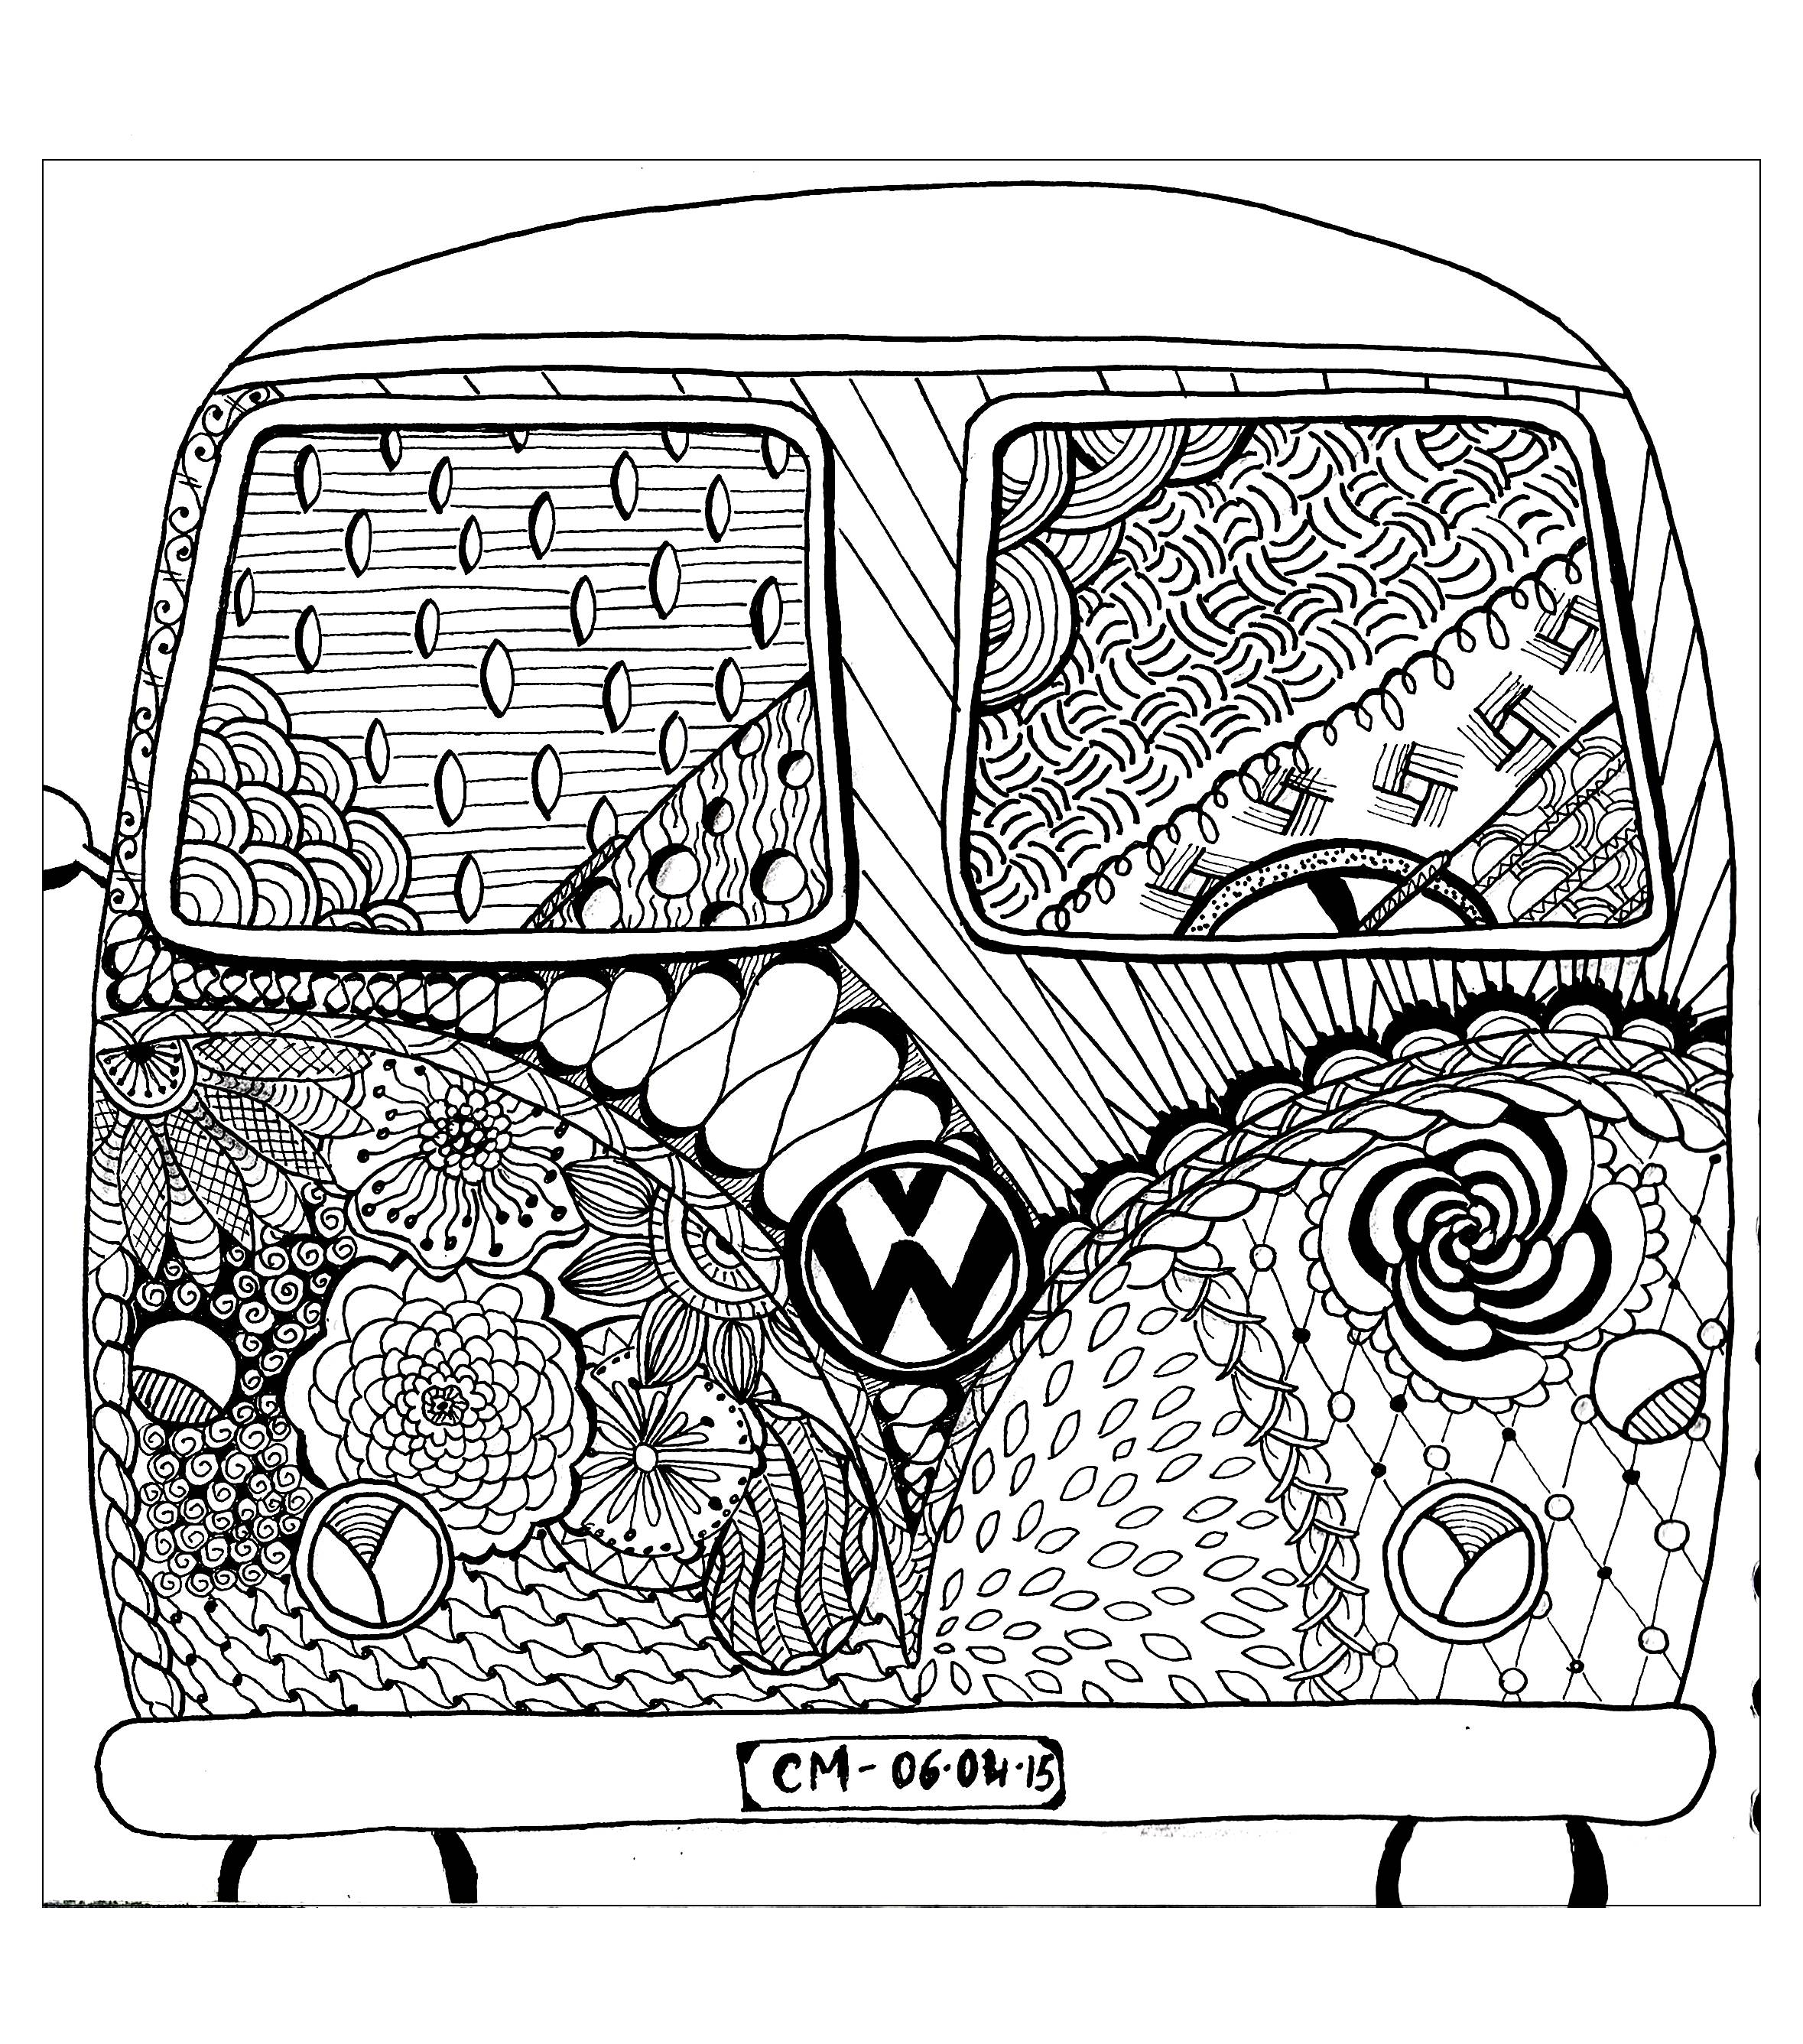 Anti stress colouring pages for adults -  Hippie Camper Exclusive Coloring Page See The Original Work Image With